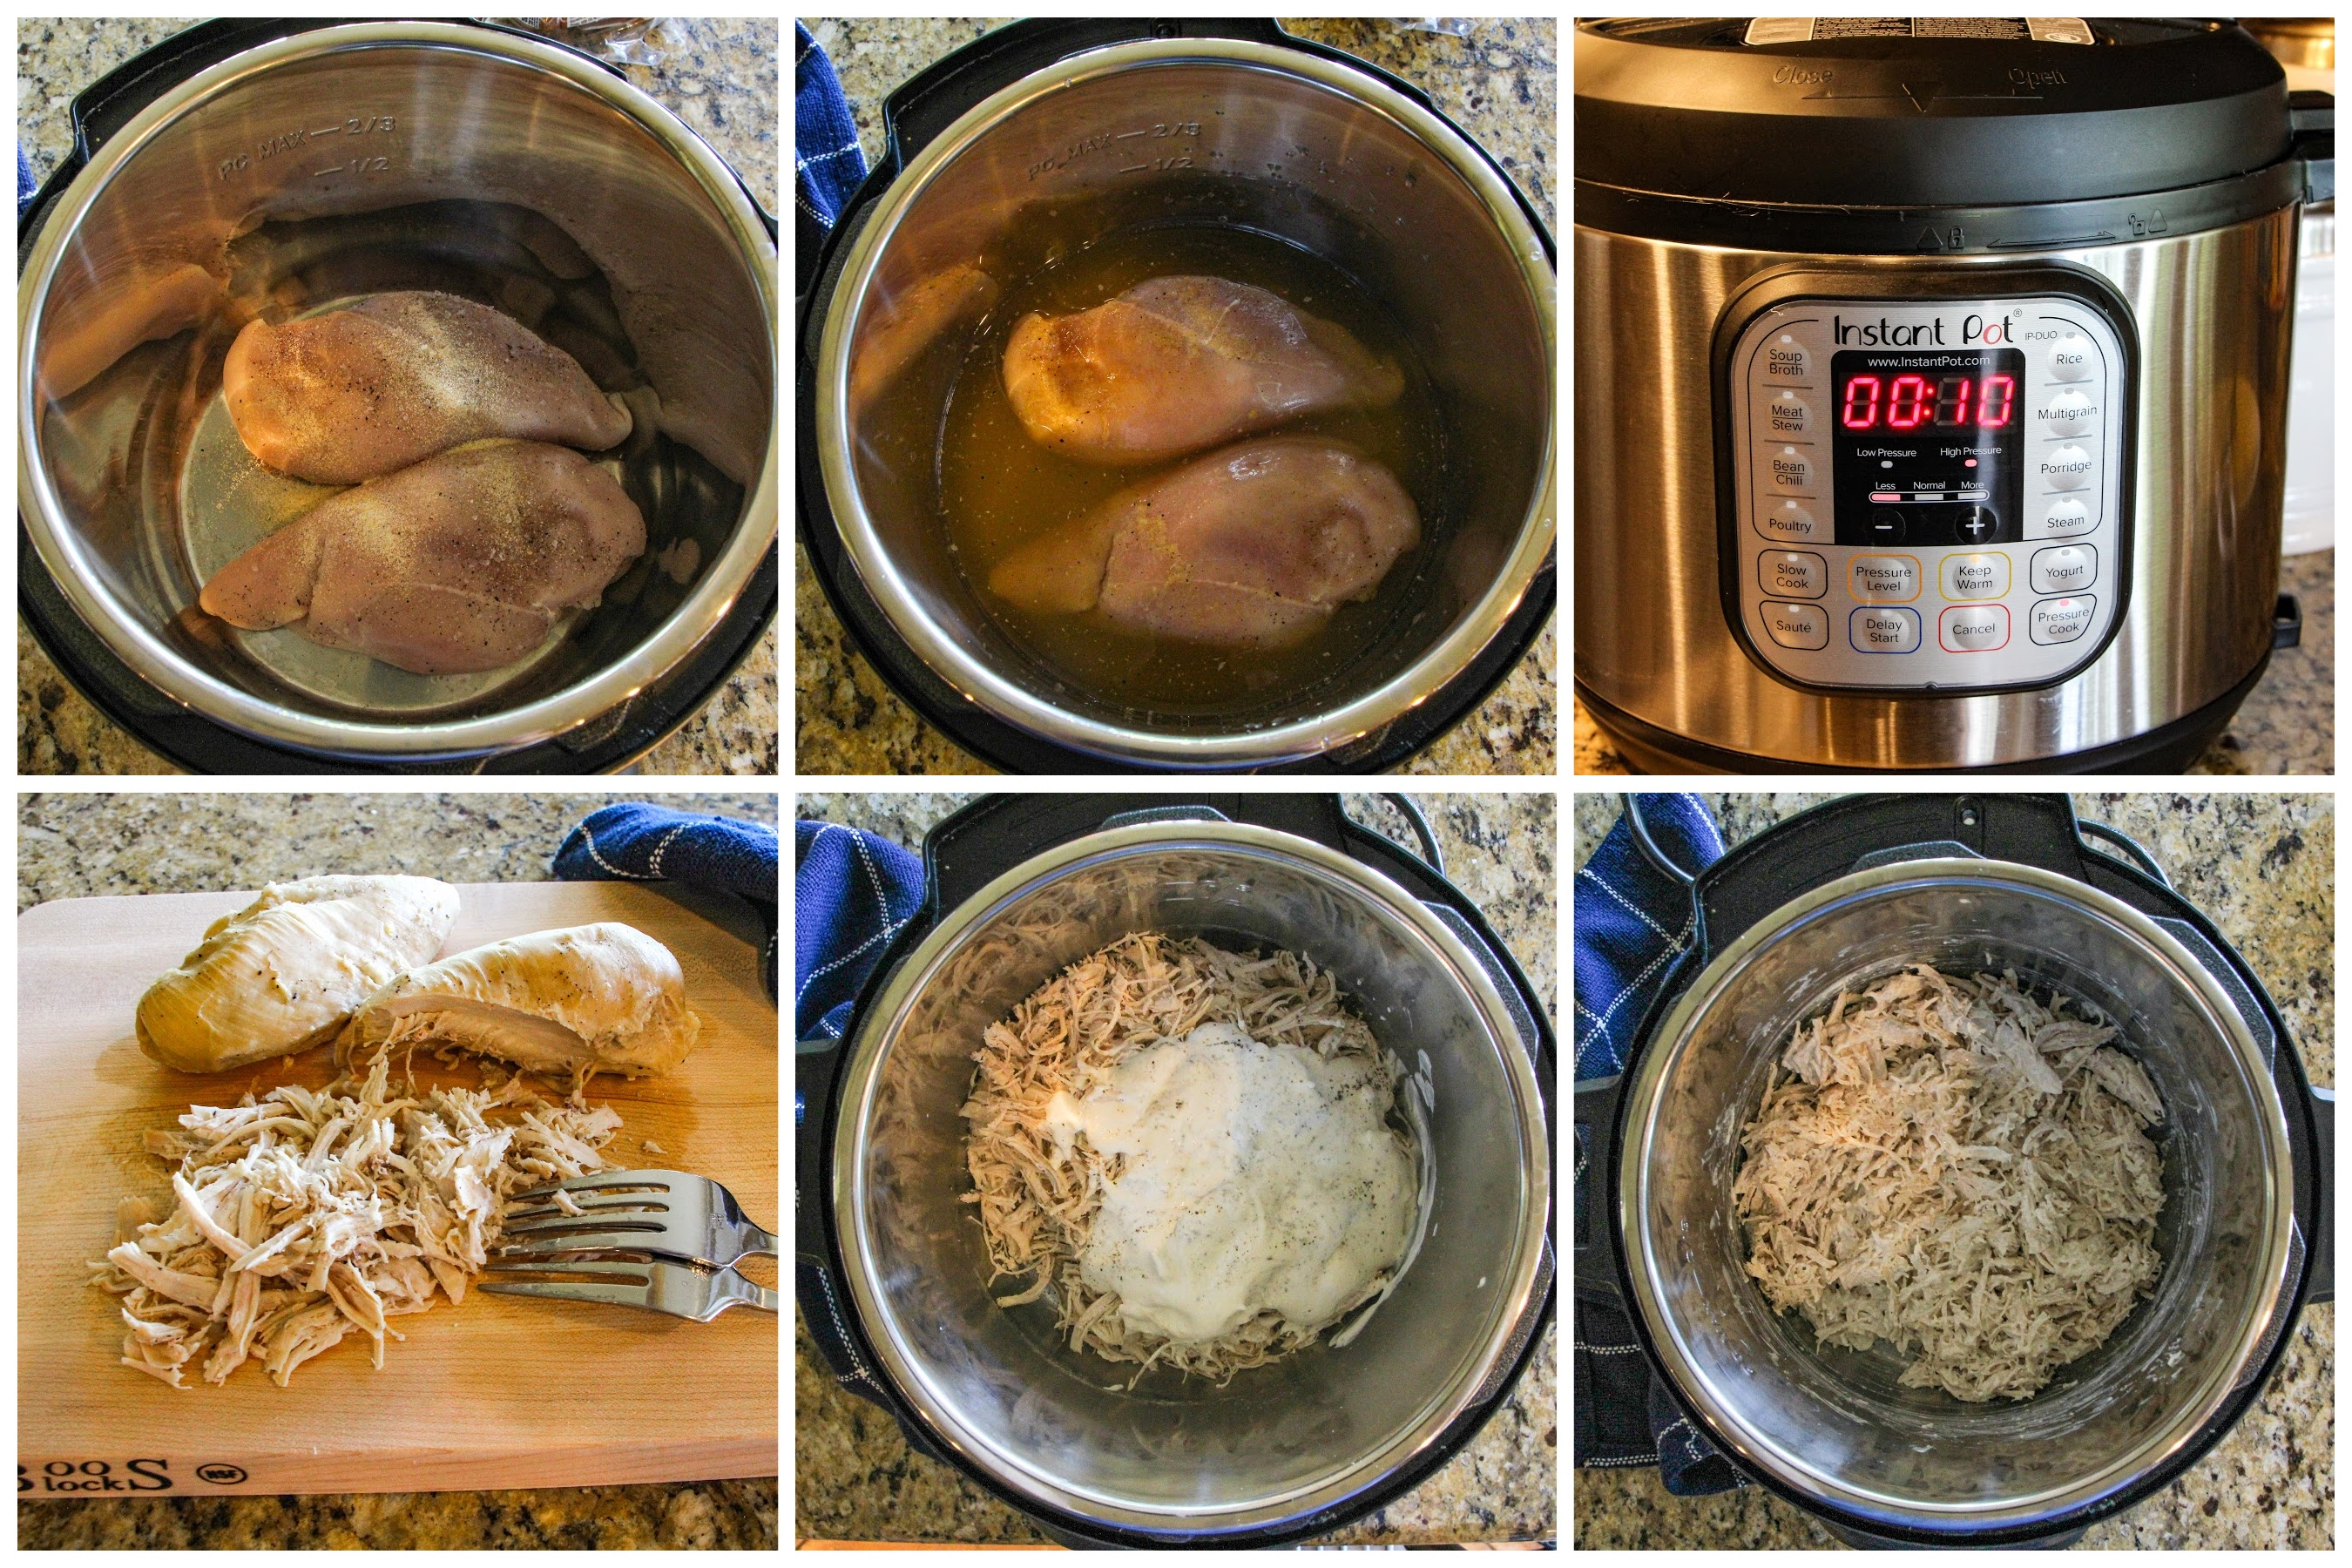 Photos showing the step by step directions for this recipe.